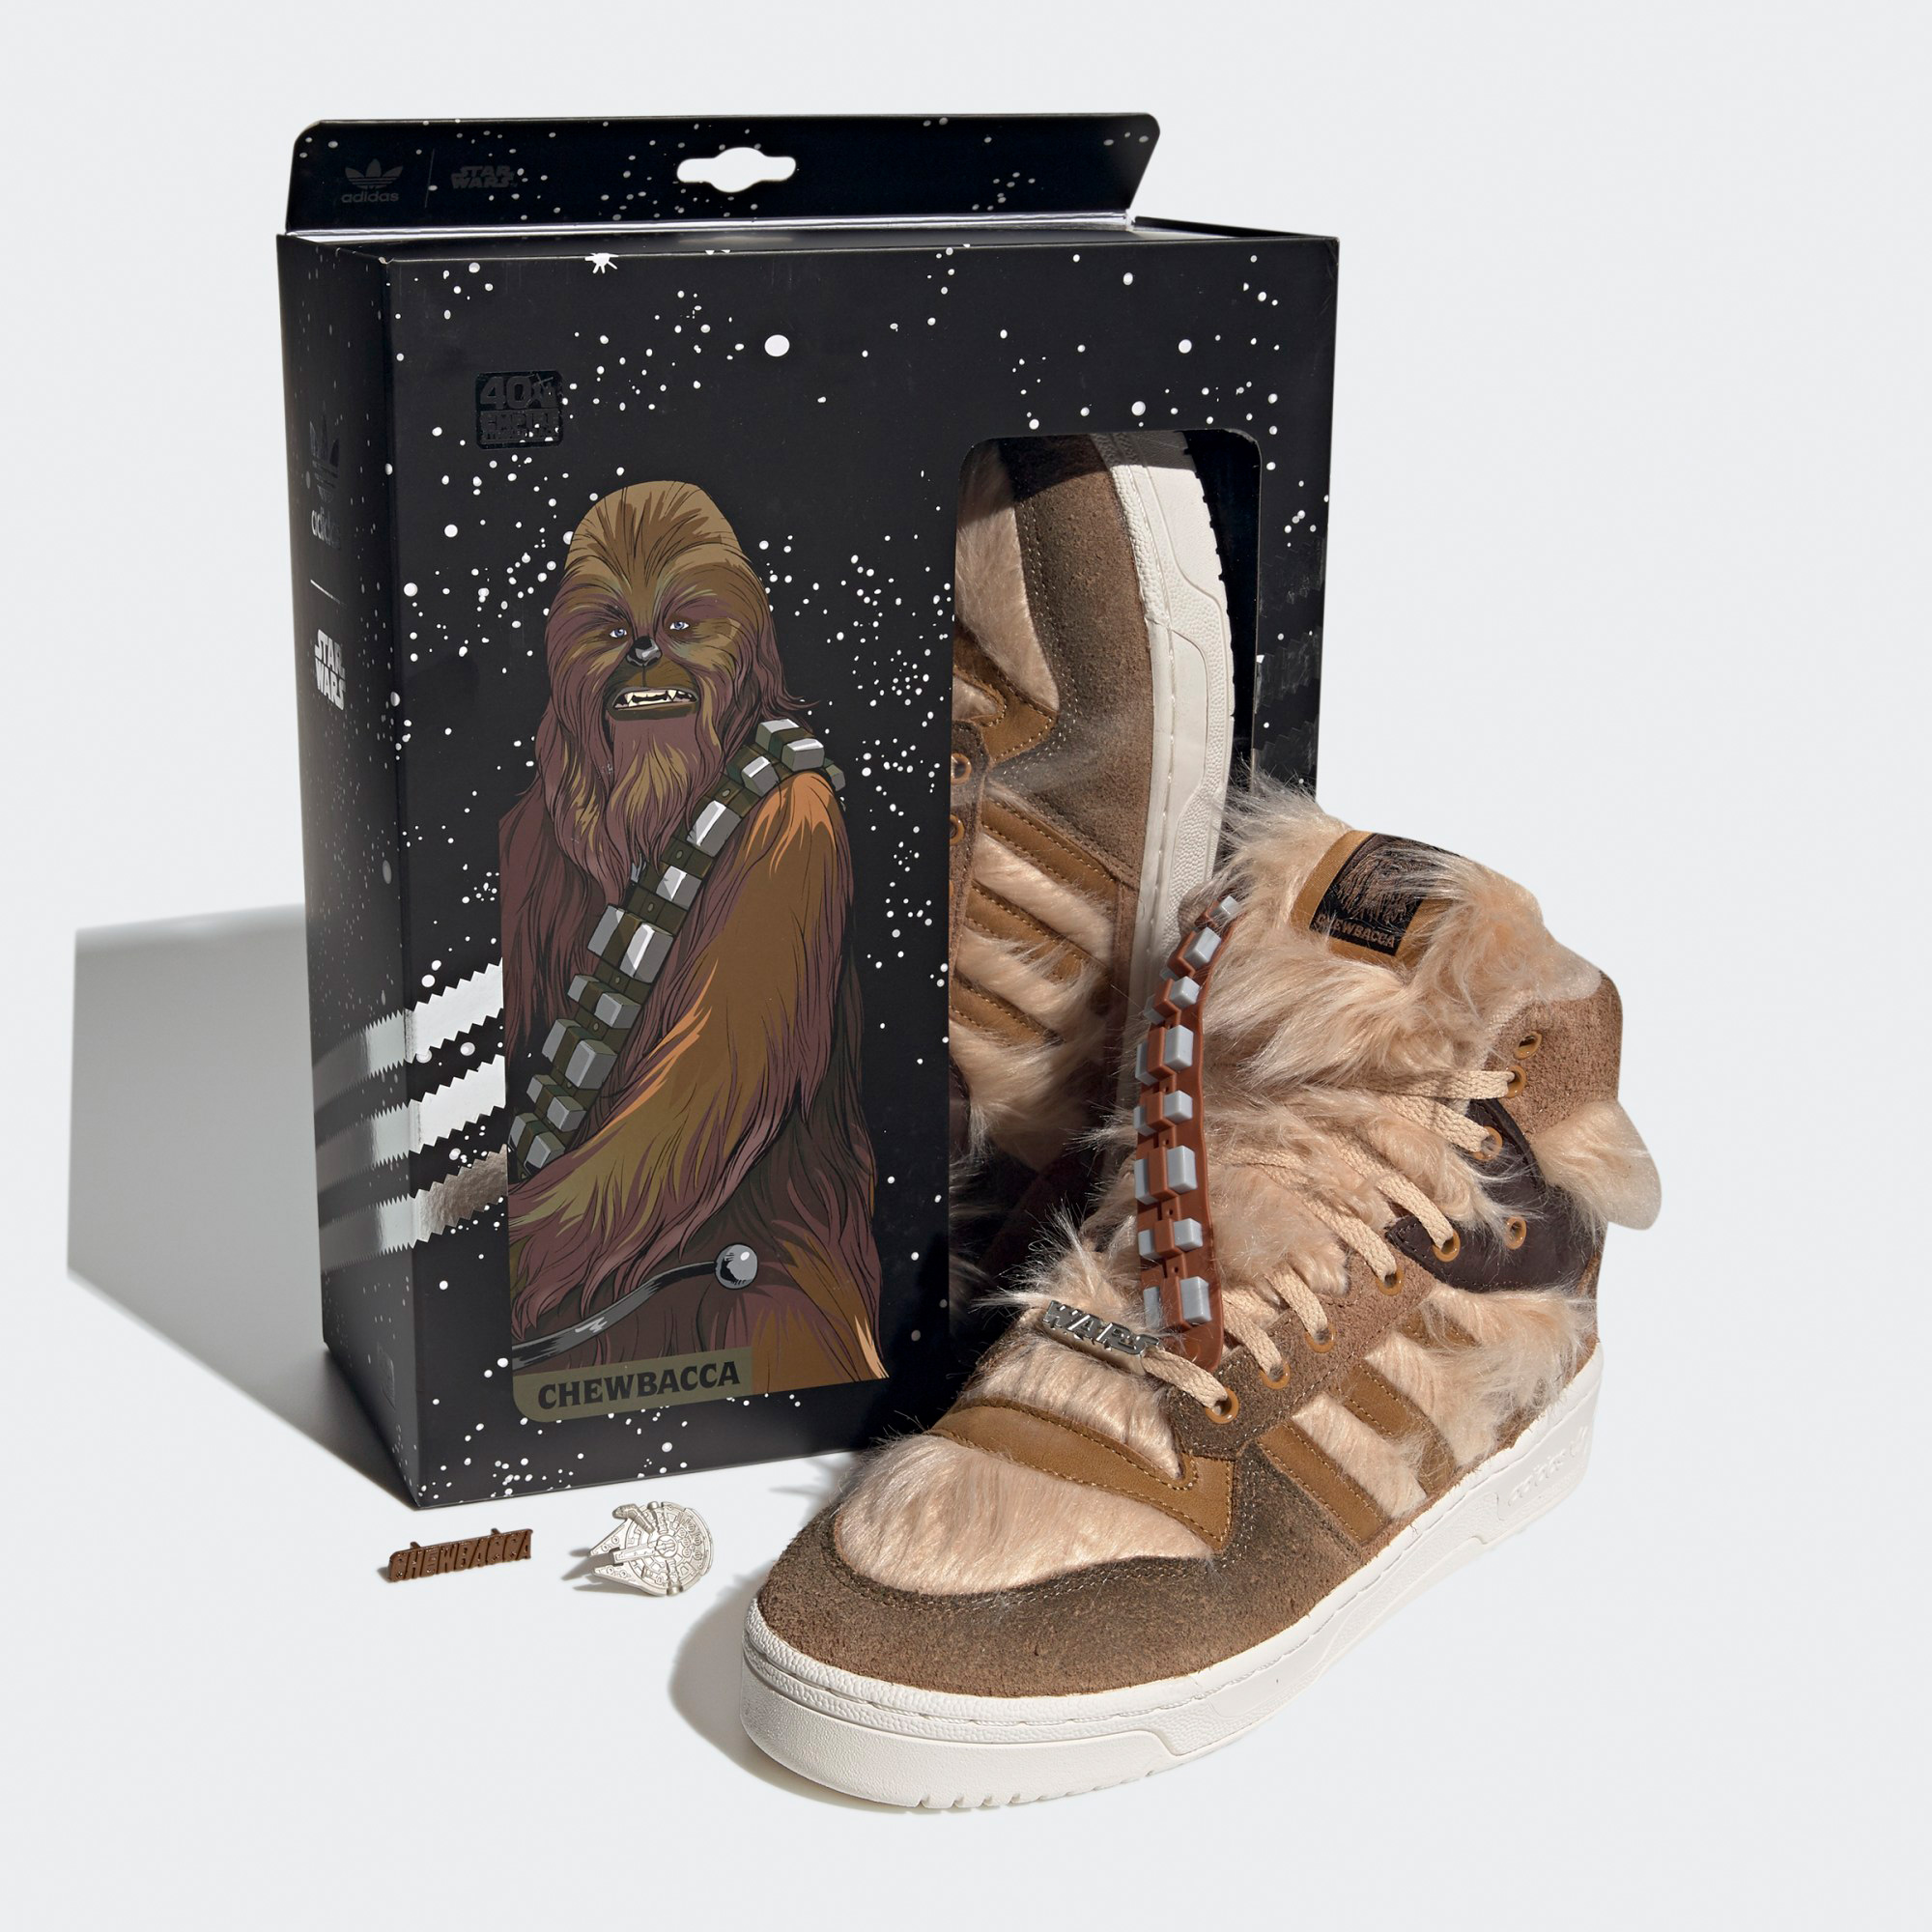 Adidas and Star Wars Launch Fur-Covered